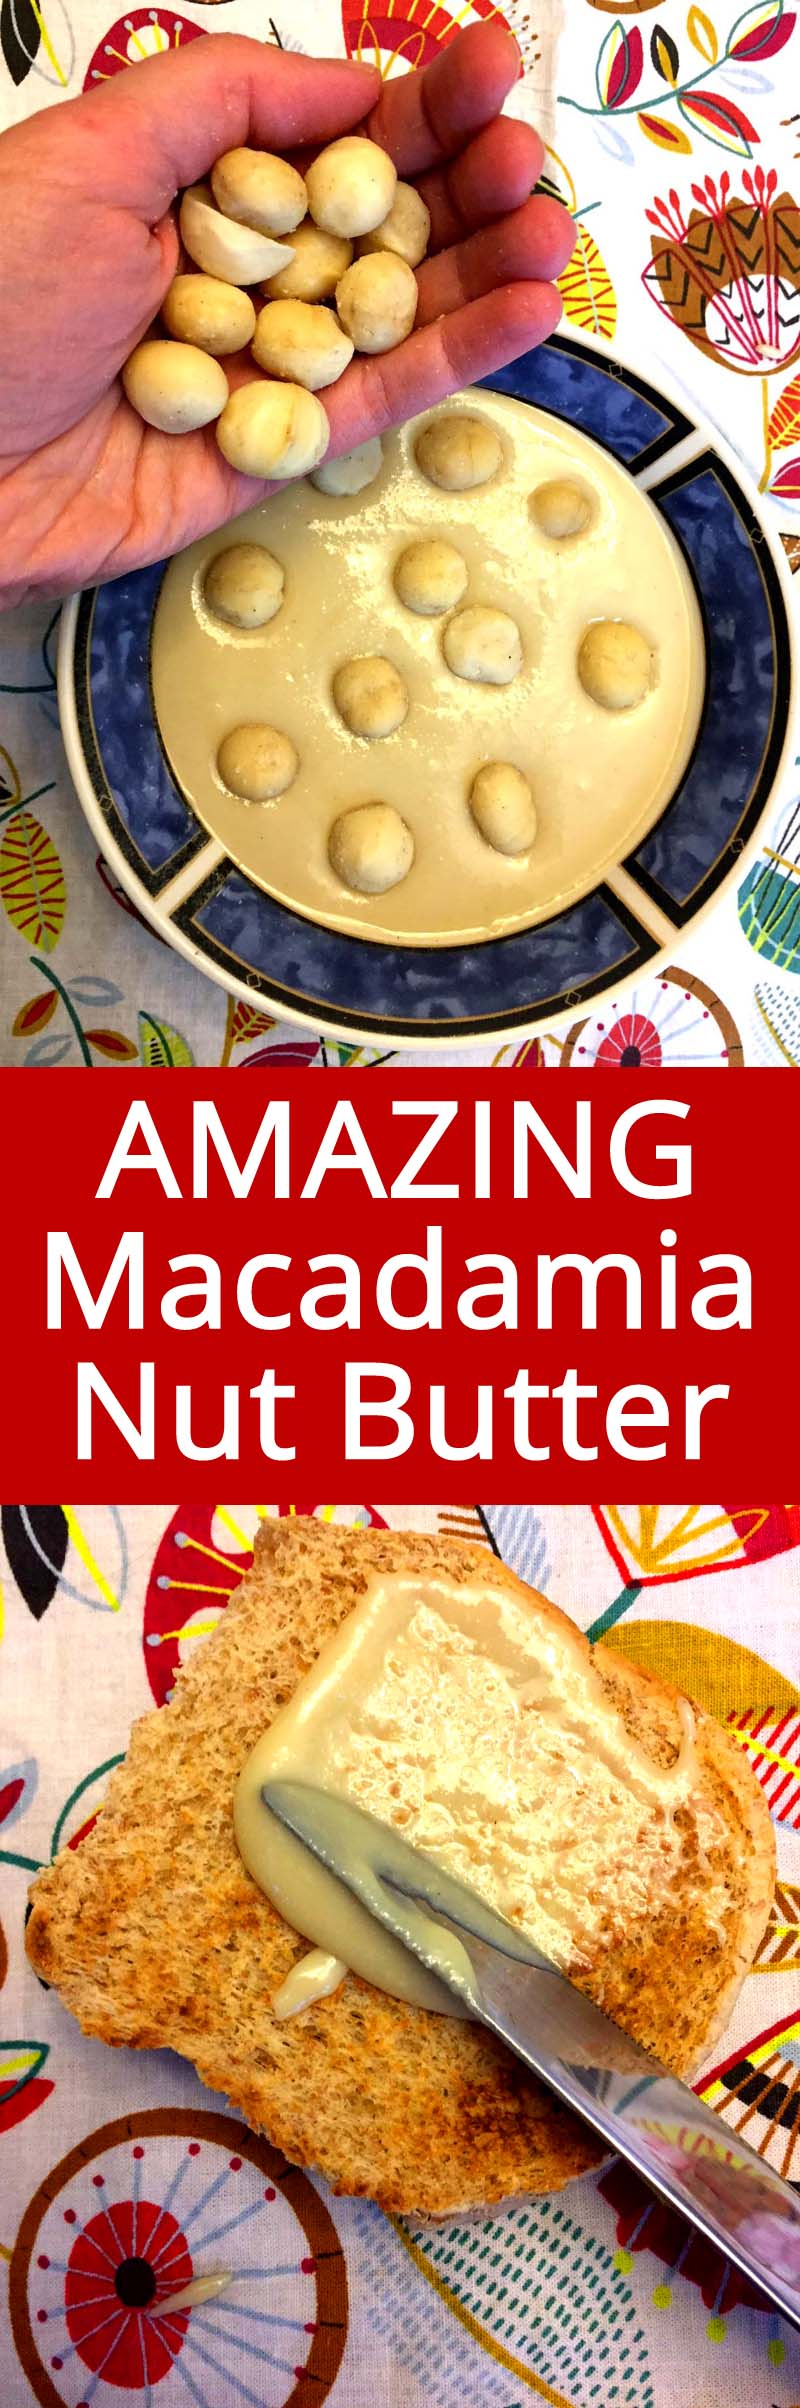 This homemade macadamia nut butter is amazing! Macadamias are my favorite nuts!